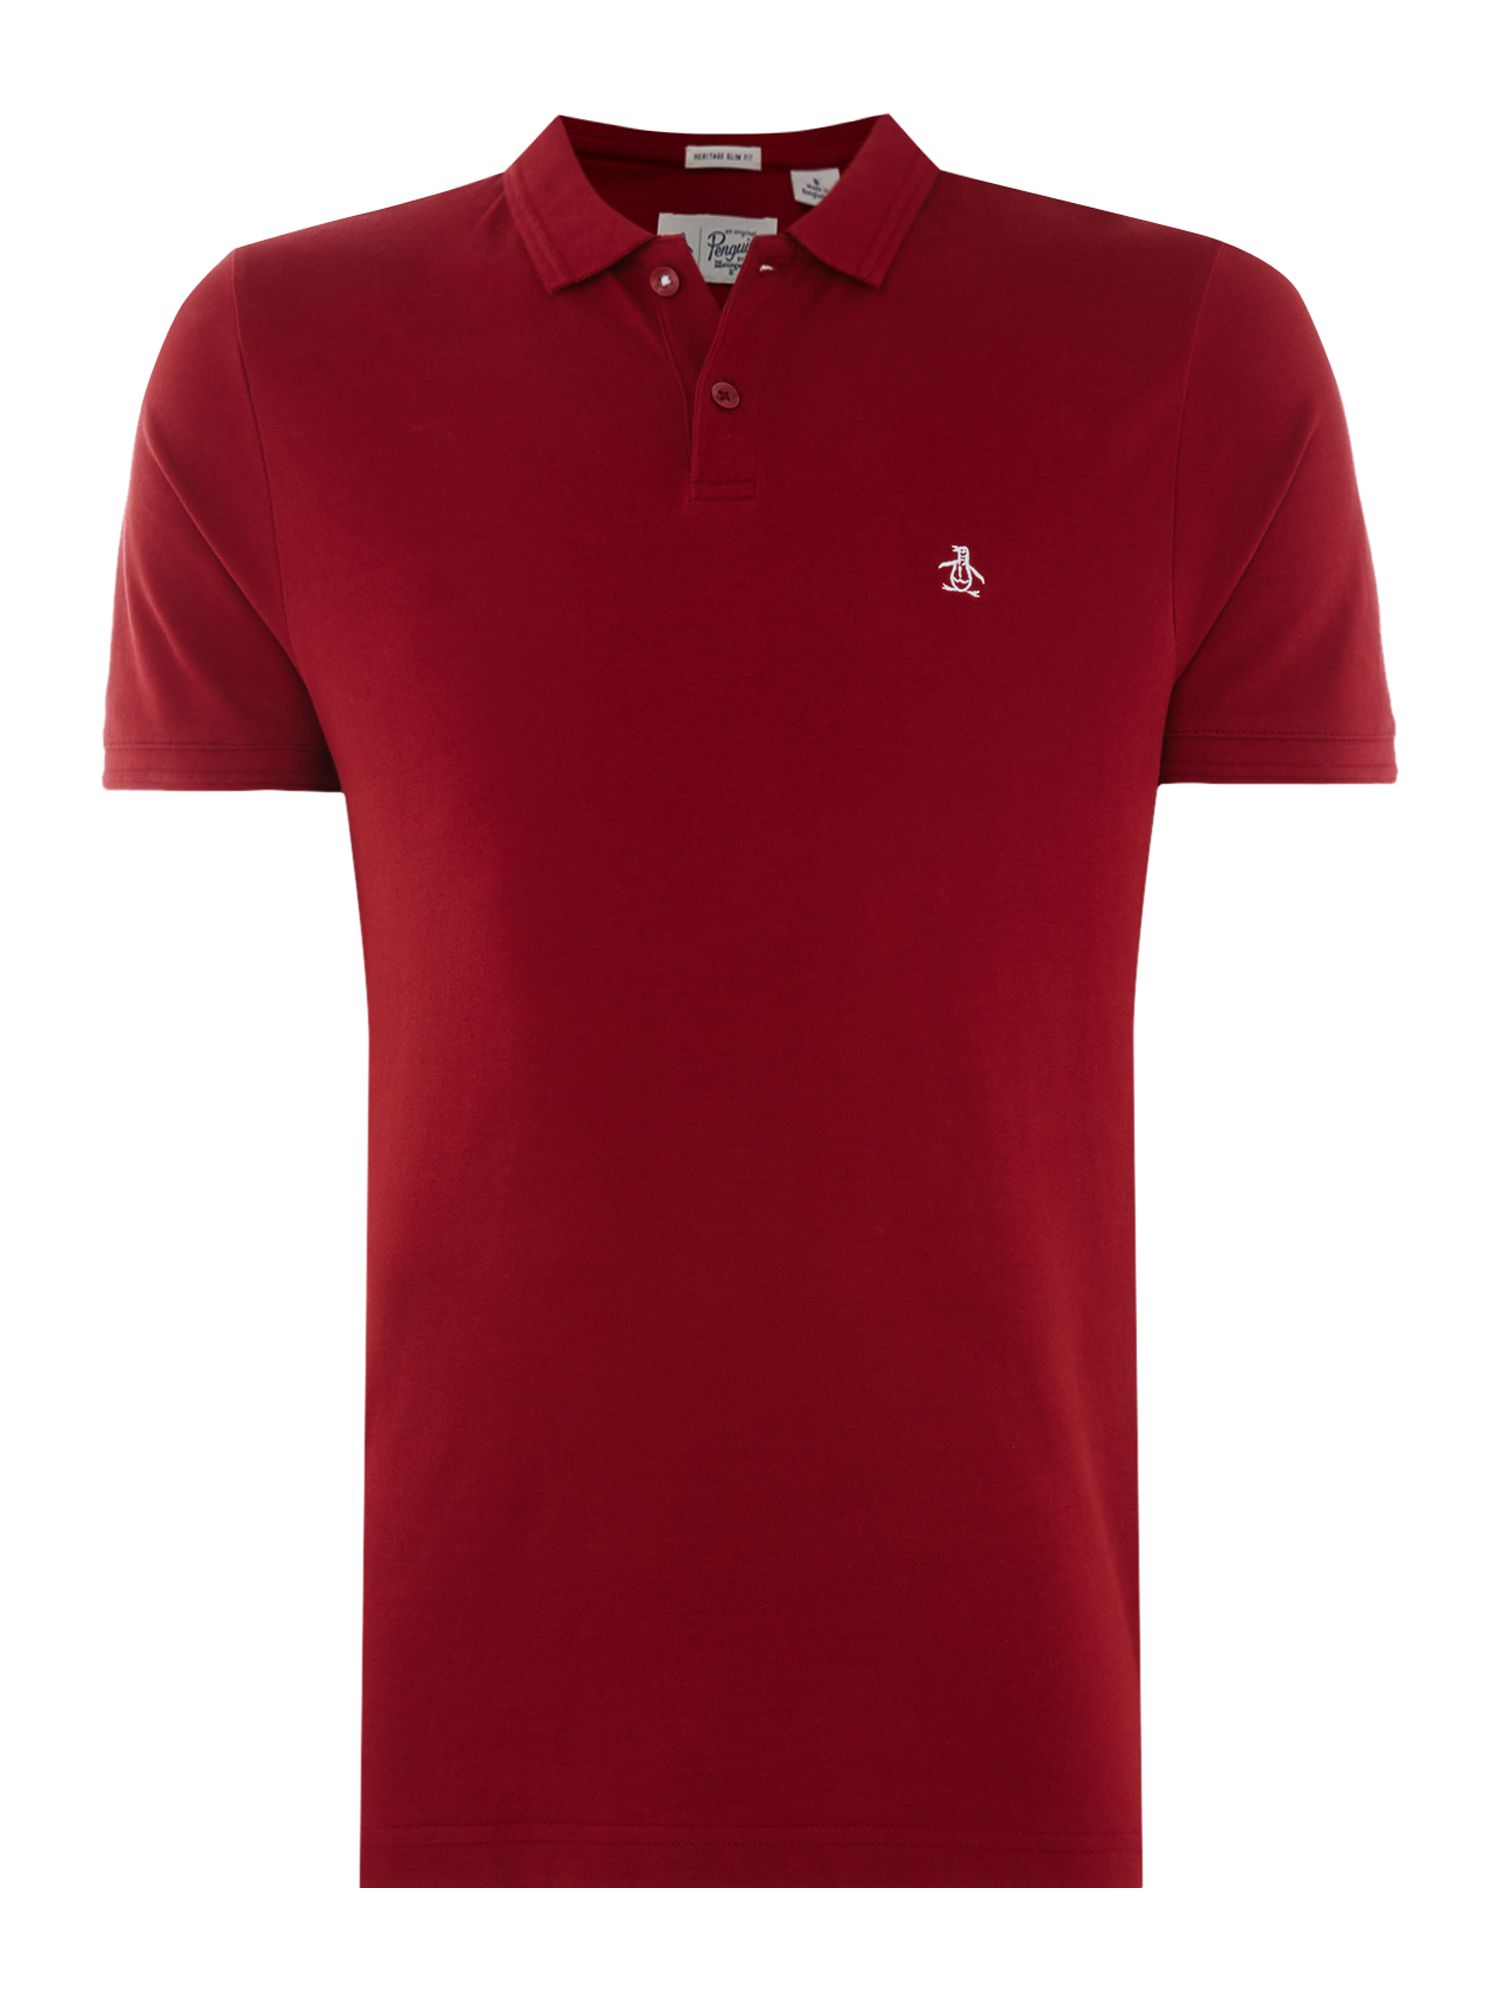 Men's Original Penguin Raised Rib Polo Shirt, Crimson